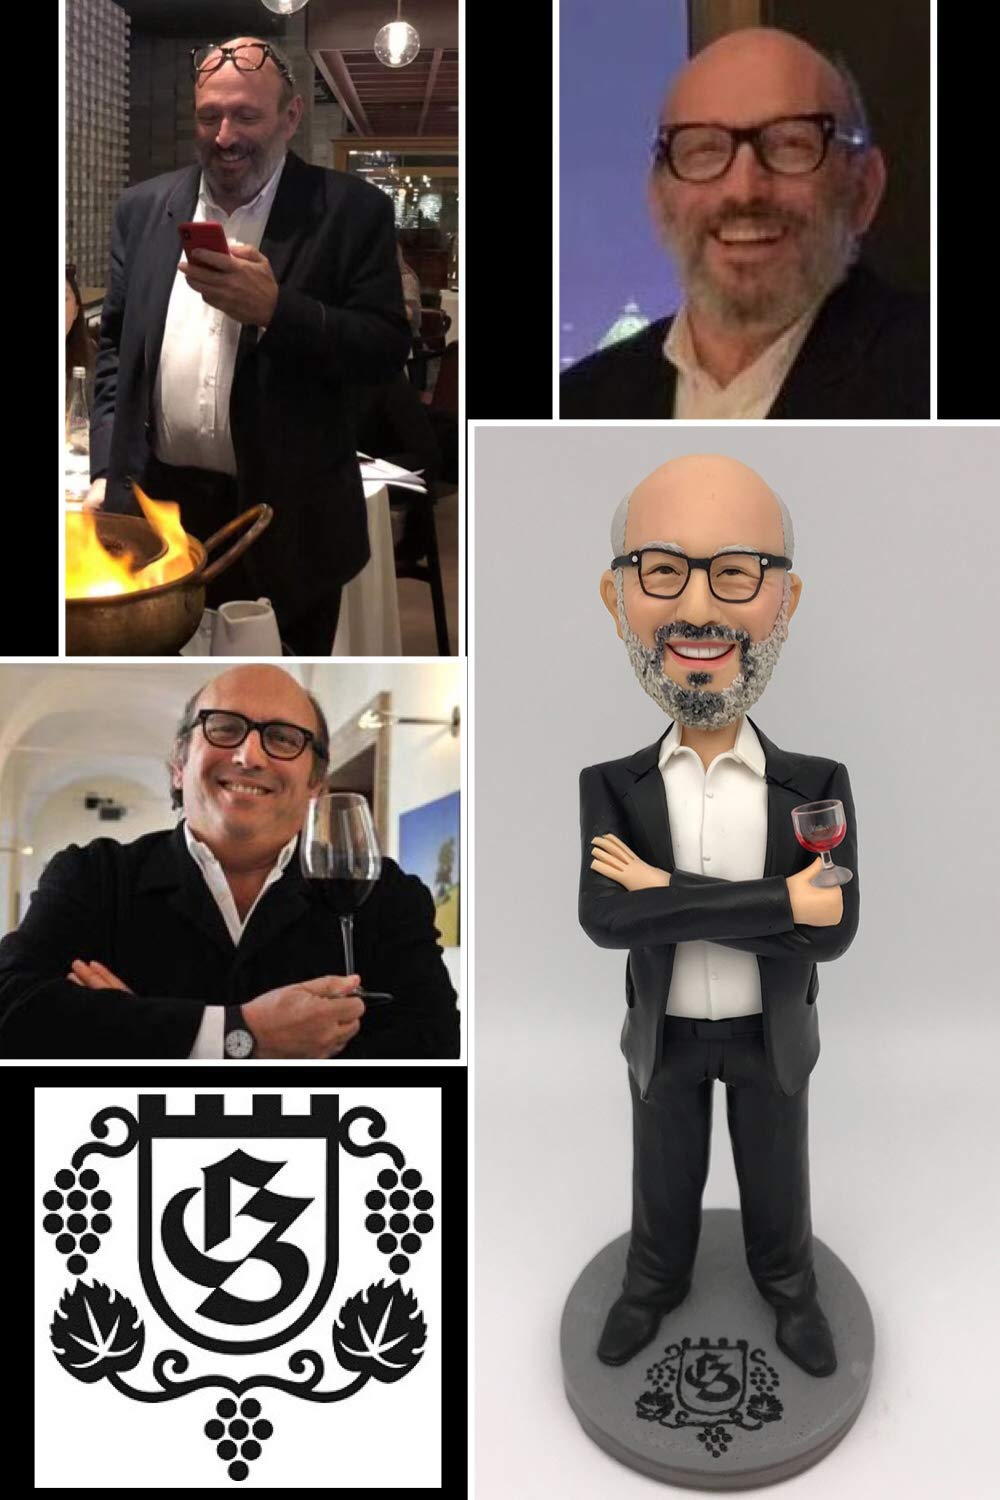 Fully Custom Bobblehead Figurine Personalized Birthday Gifts Based on Your Photos One person DHL Expedited Shipping Service